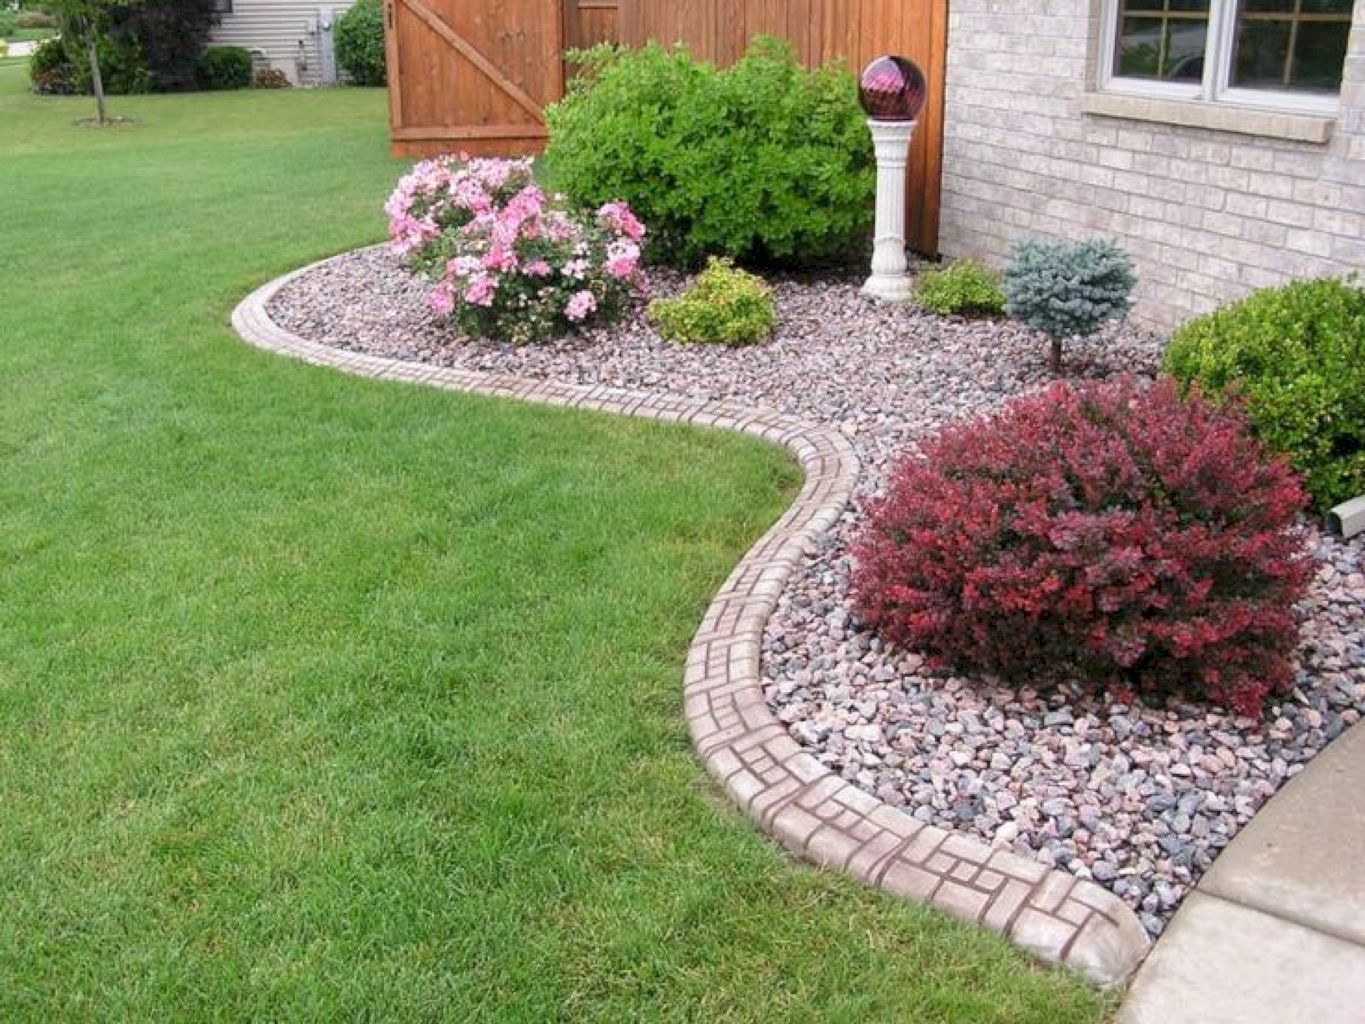 Fabulous Front Yard Rock Garden Ideas 36 With Images Rock